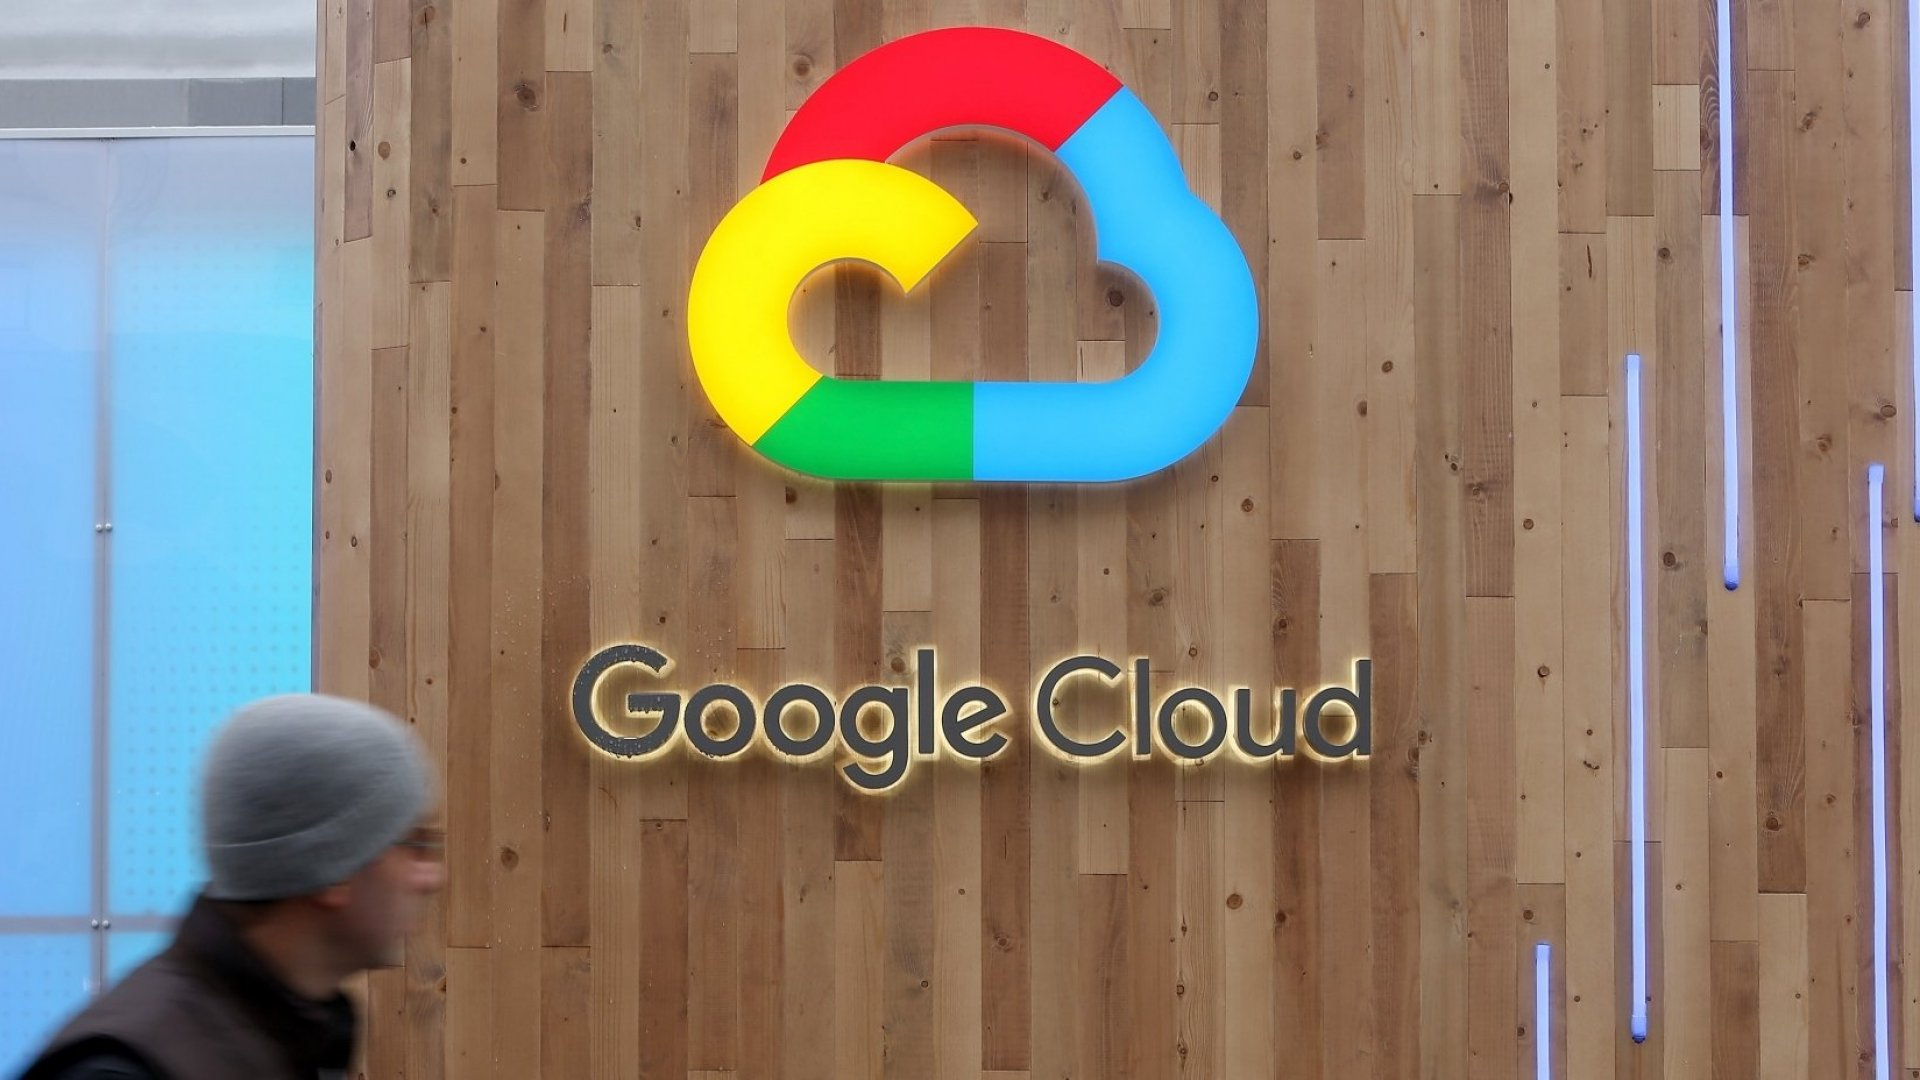 Google Cloud Uses This 3-Step Marketing Strategy to Sell Complex Products. Here's How You Can Too